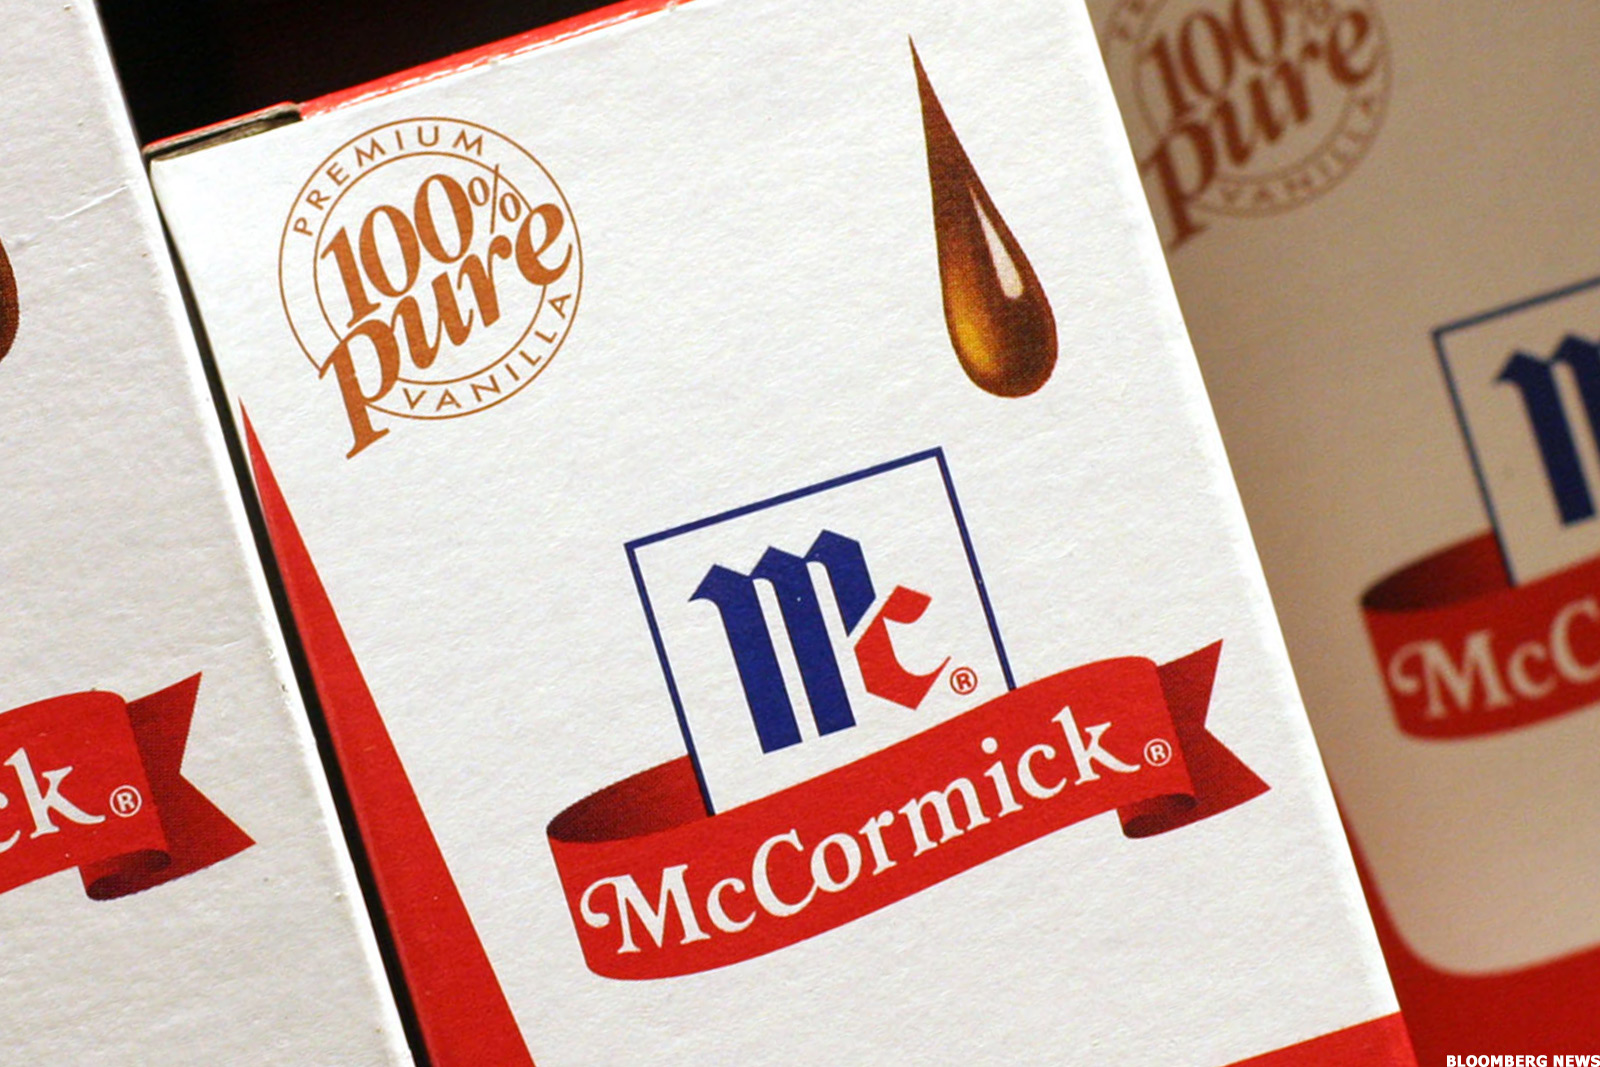 Mccormick Mkc Stock Is The Chart Of The Day Thestreet